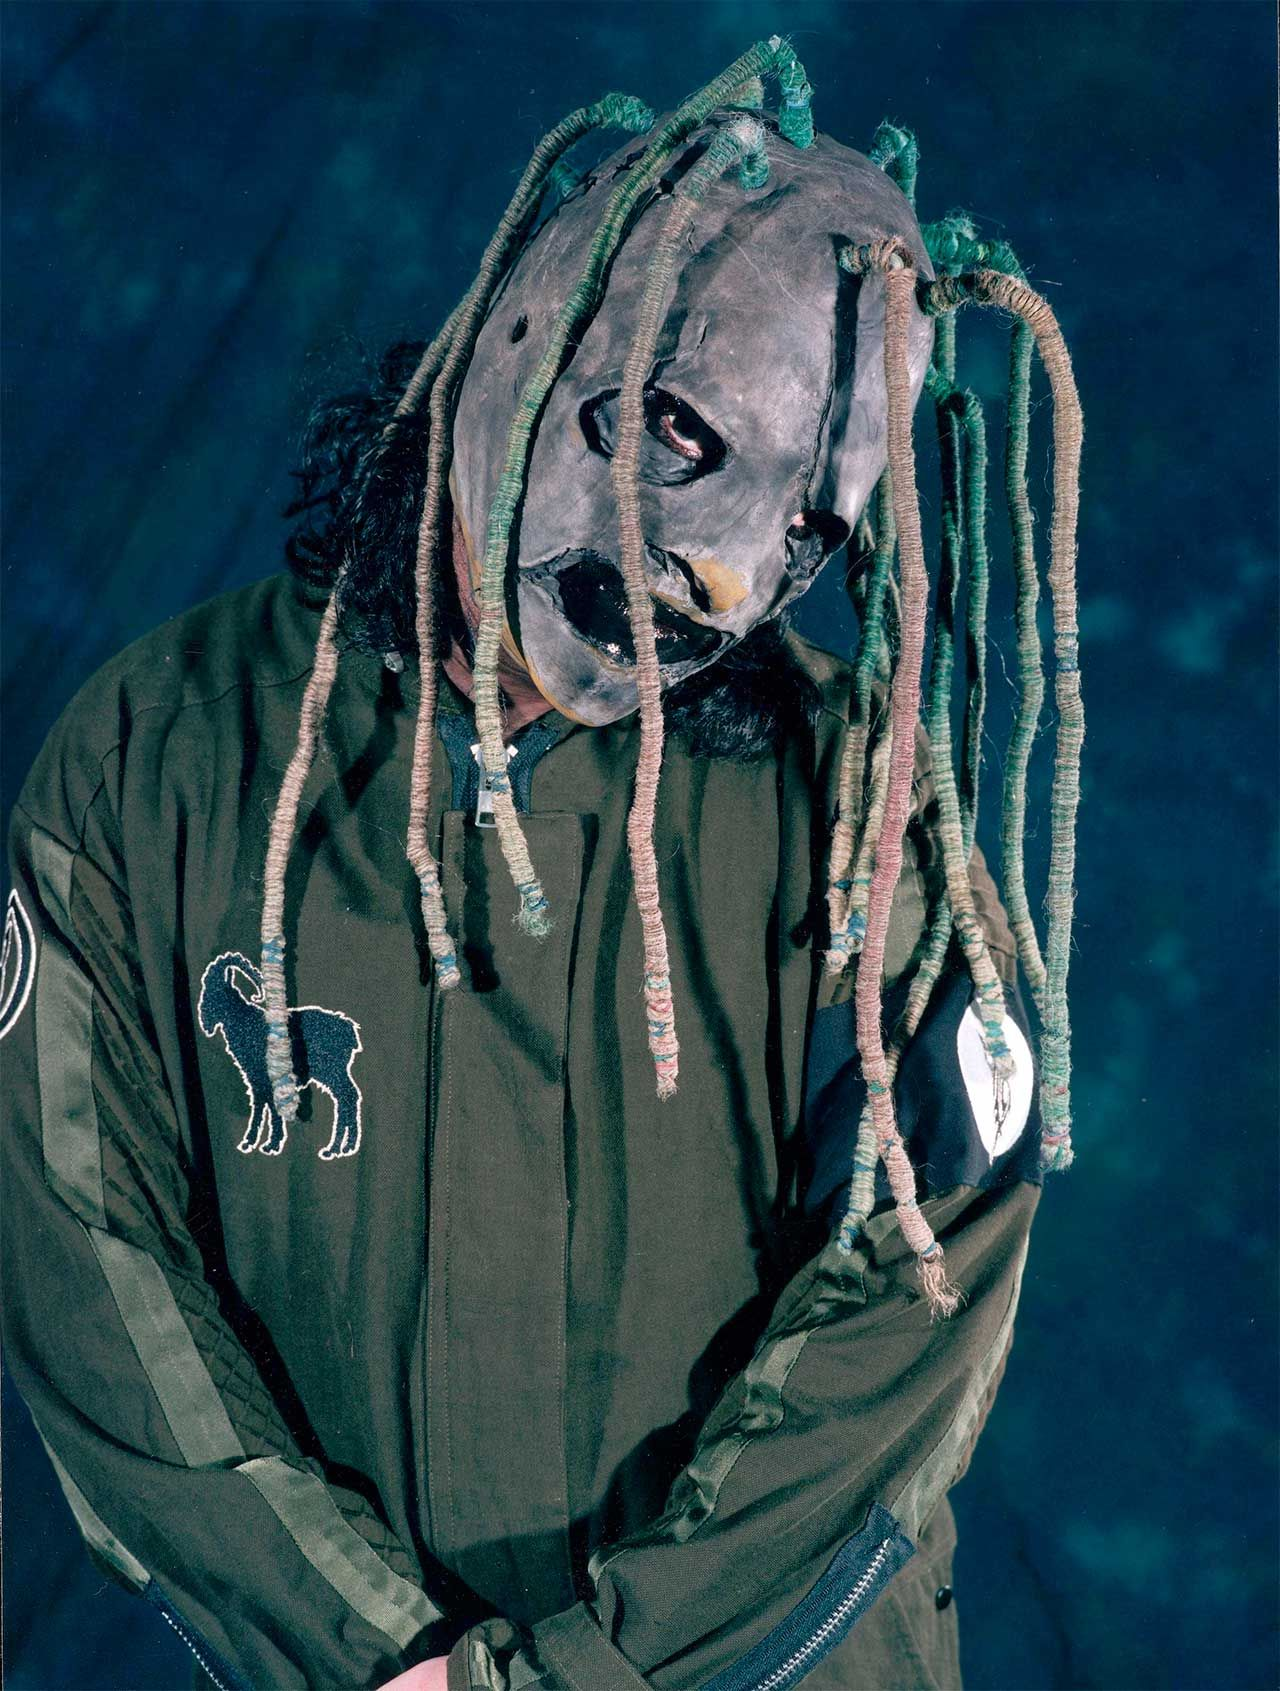 6f54bef25 Corey Taylor in all his greatness. Slipknot Corey Taylor